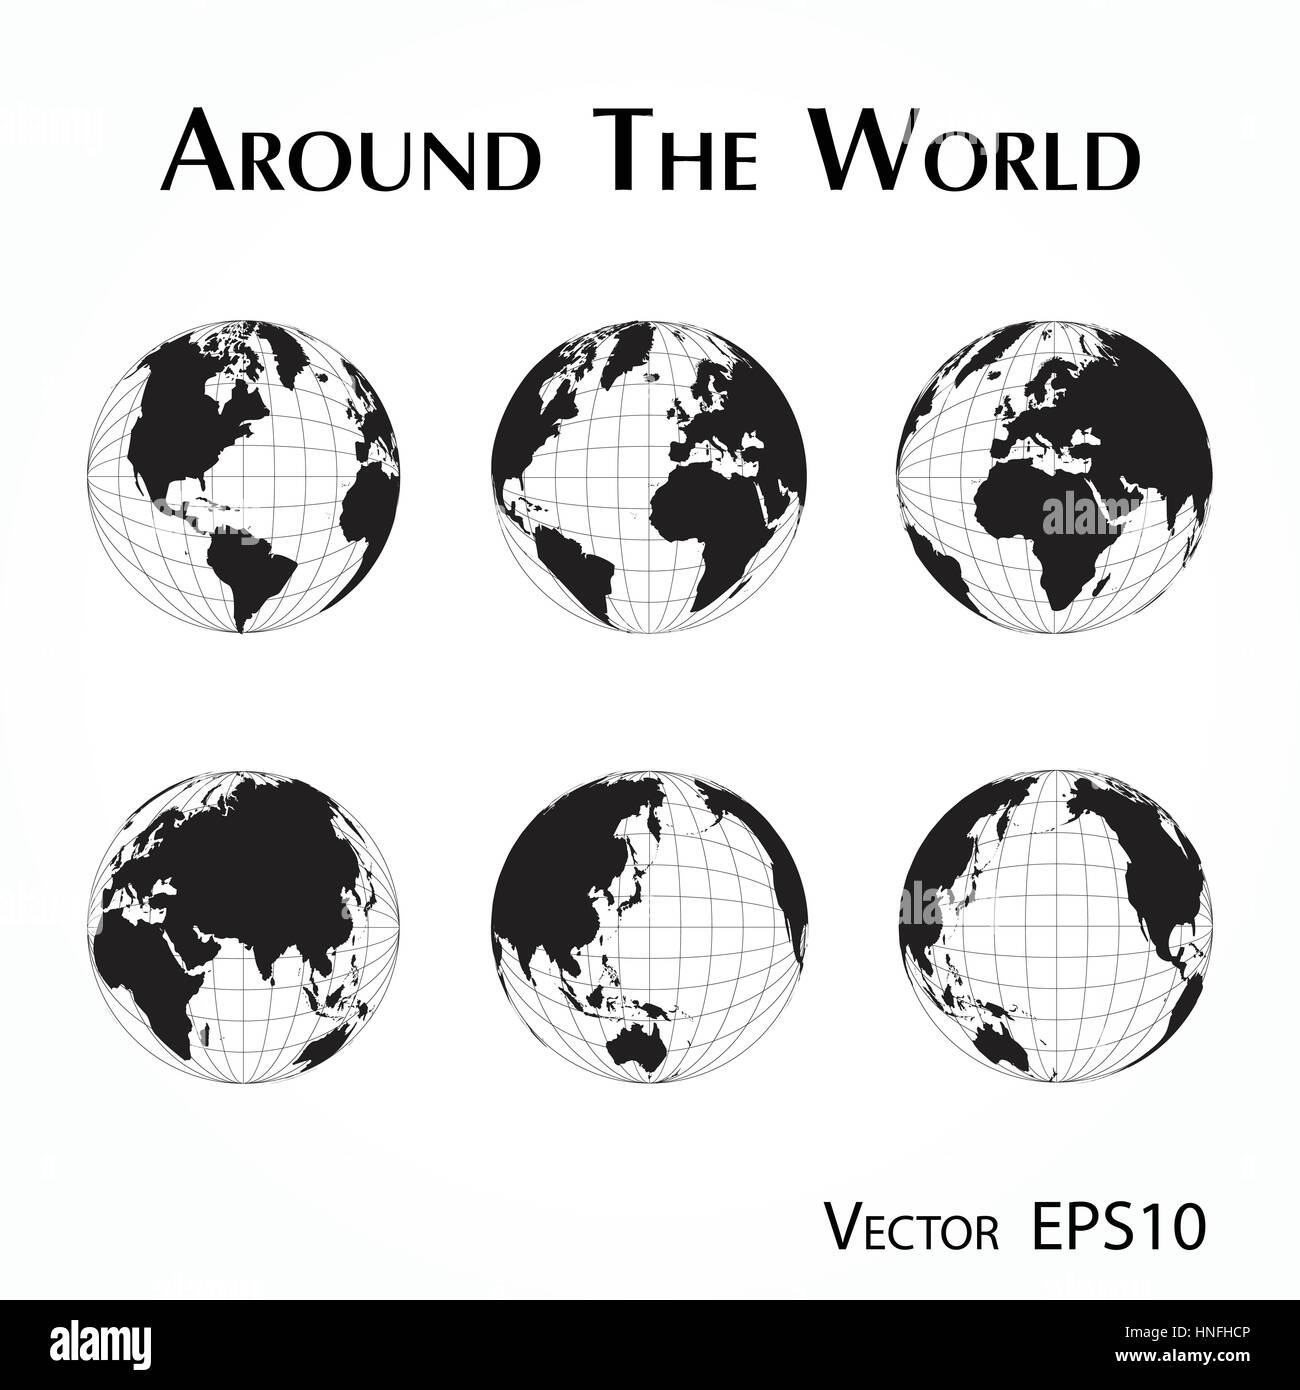 Around the world outline of world map with latitude and longitude around the world outline of world map with latitude and longitude gumiabroncs Image collections